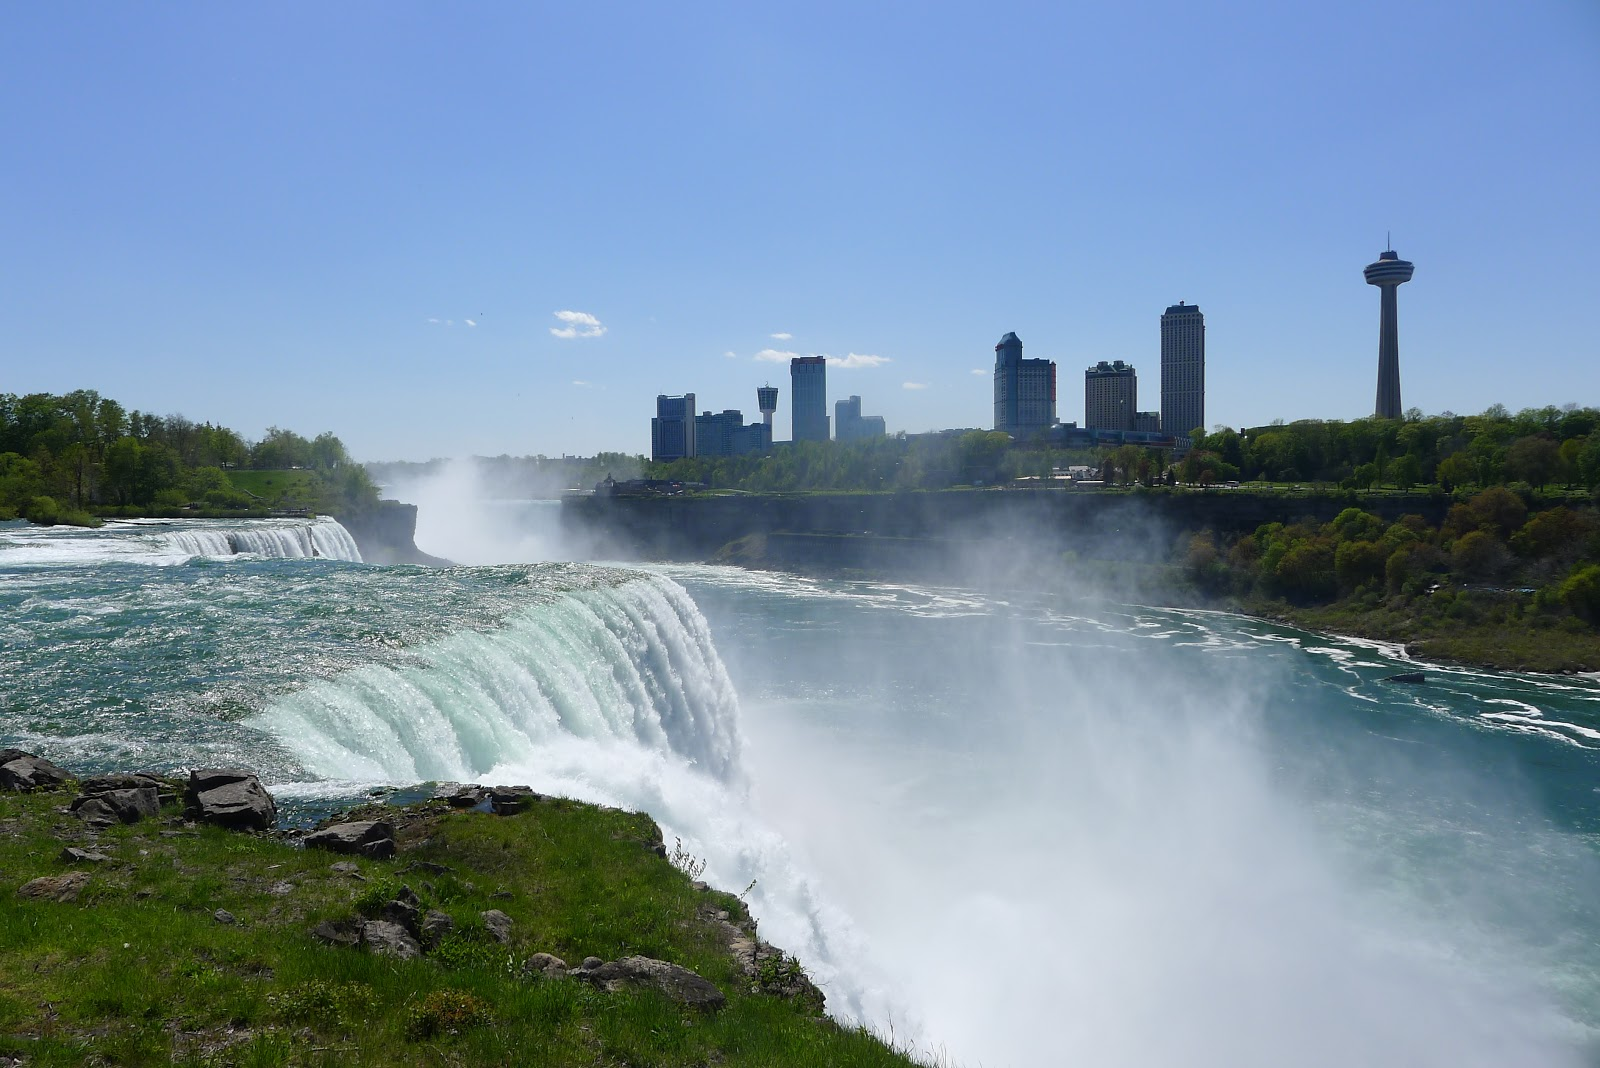 We went to niagara falls where i saw a tiny bit of canada for the